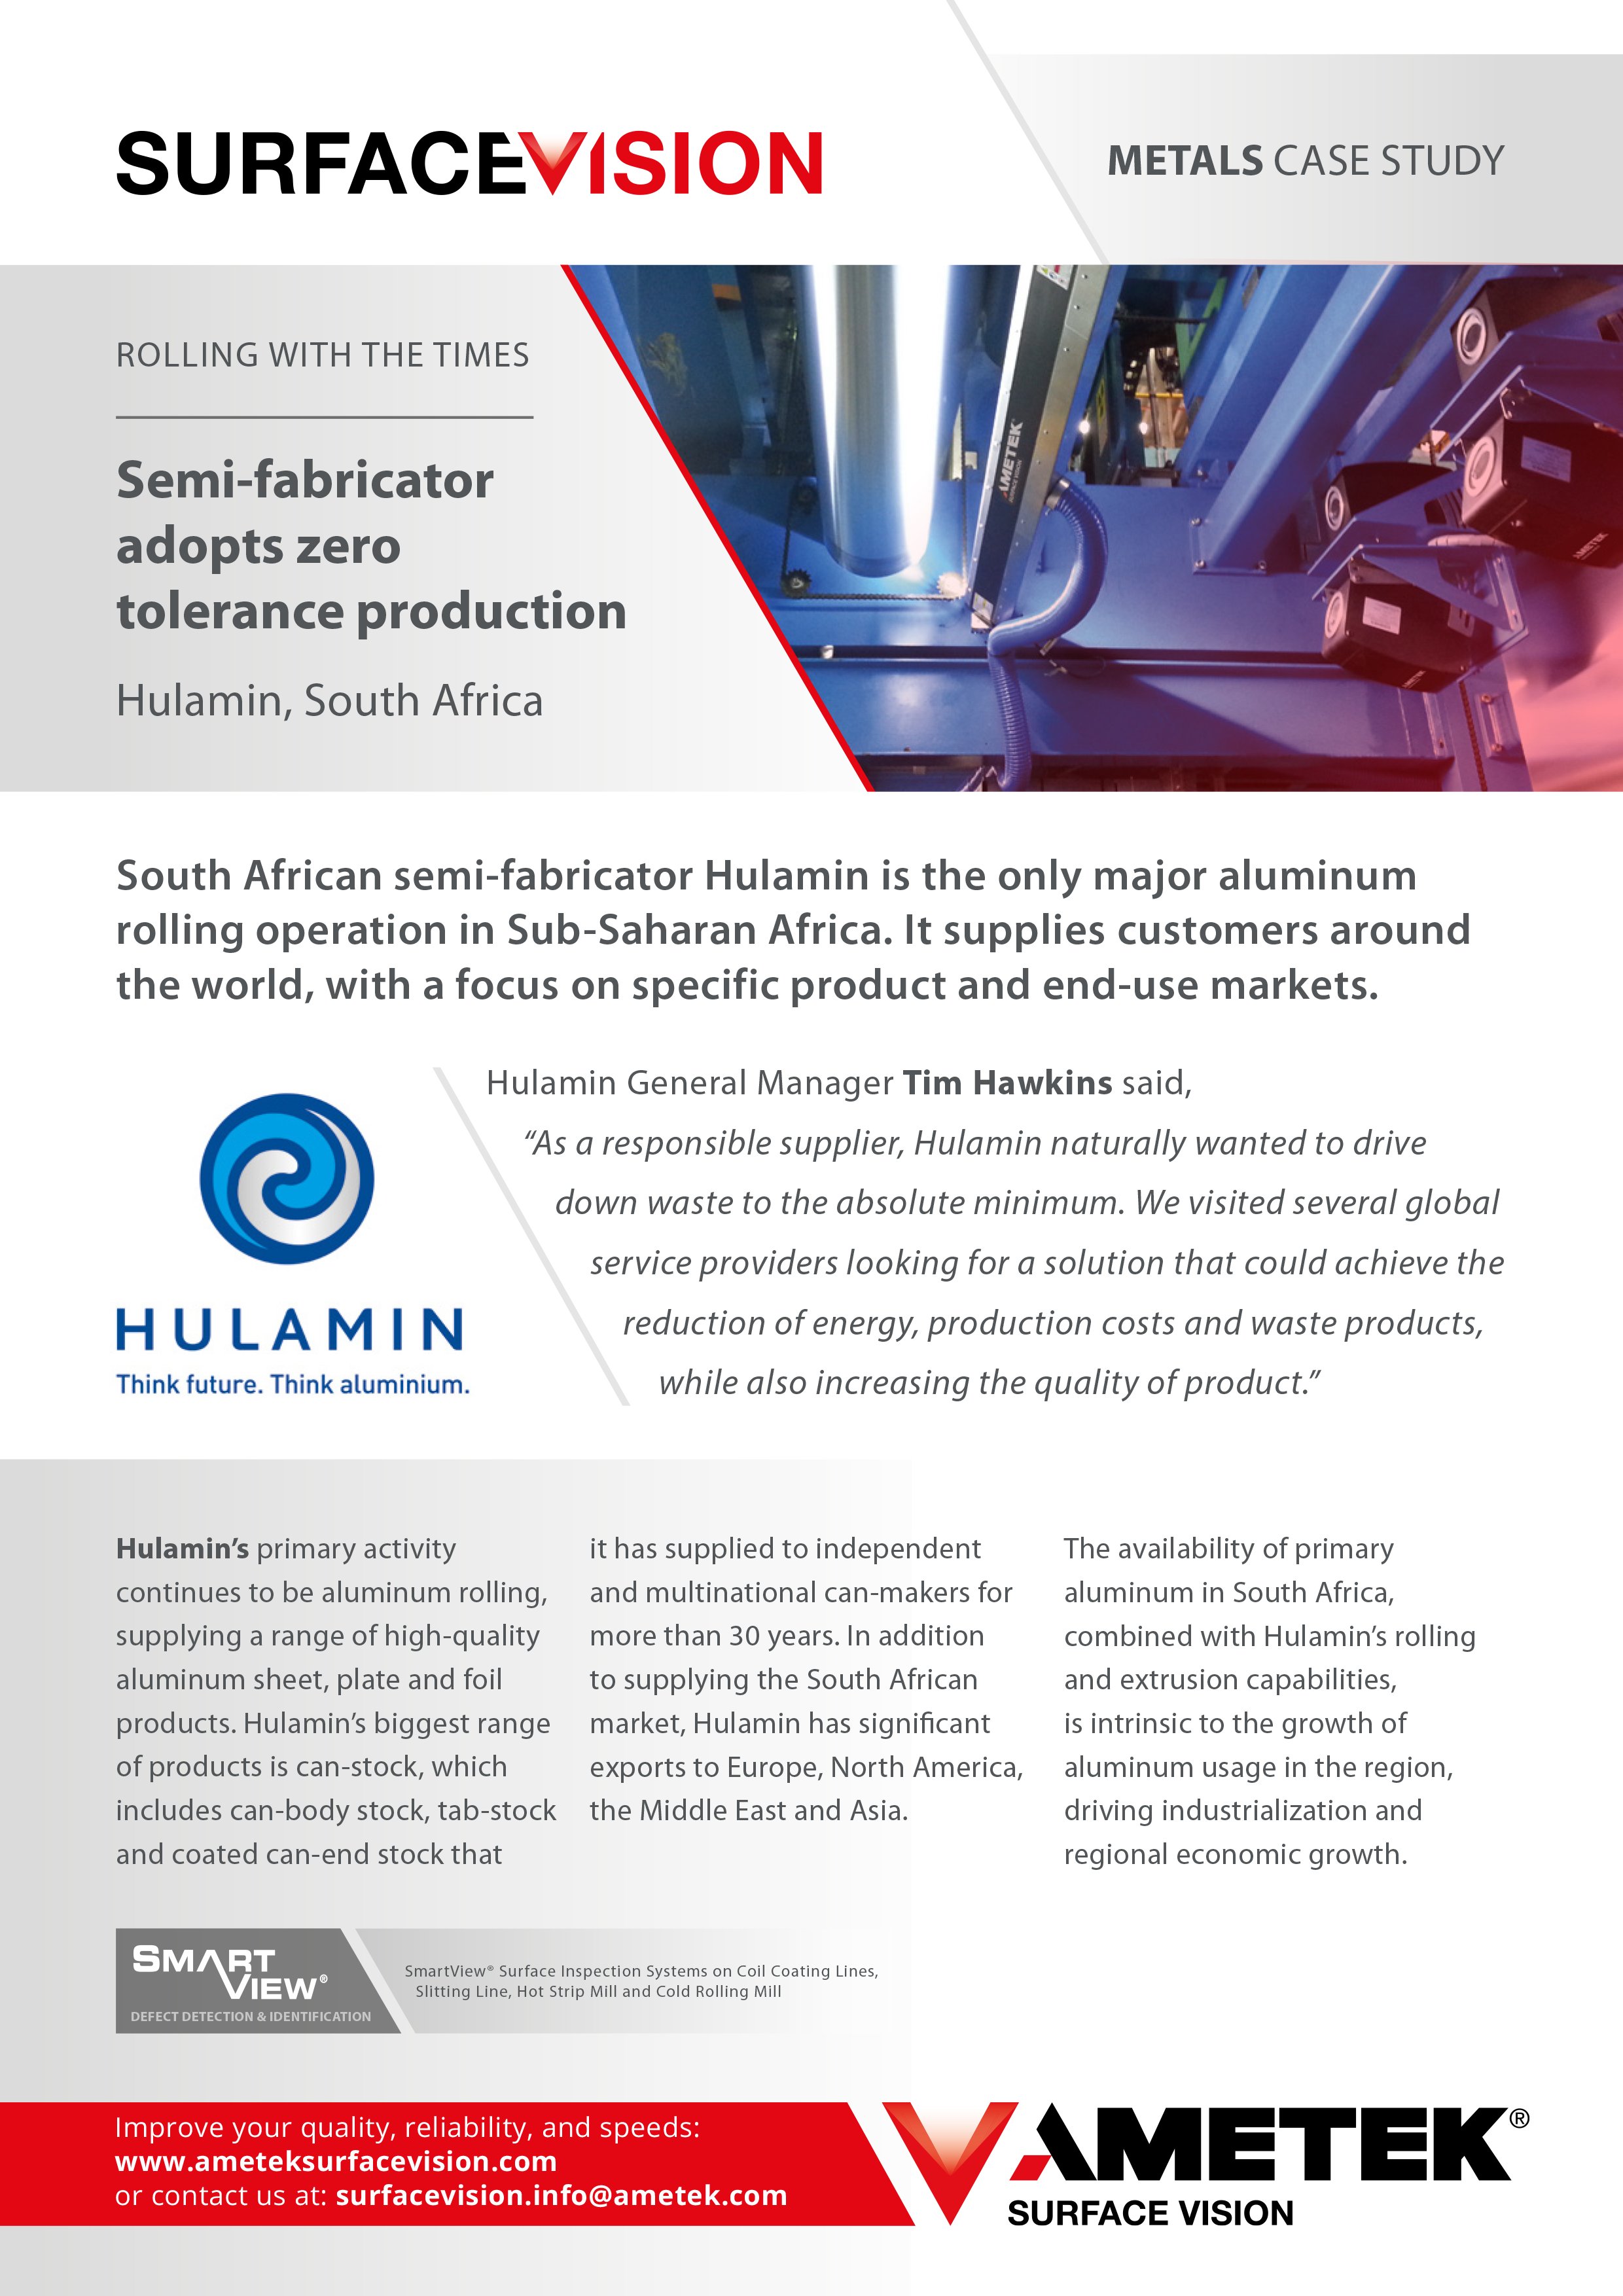 Semi-fabricator adopts zero tolerance production at Hulamin, South Africa